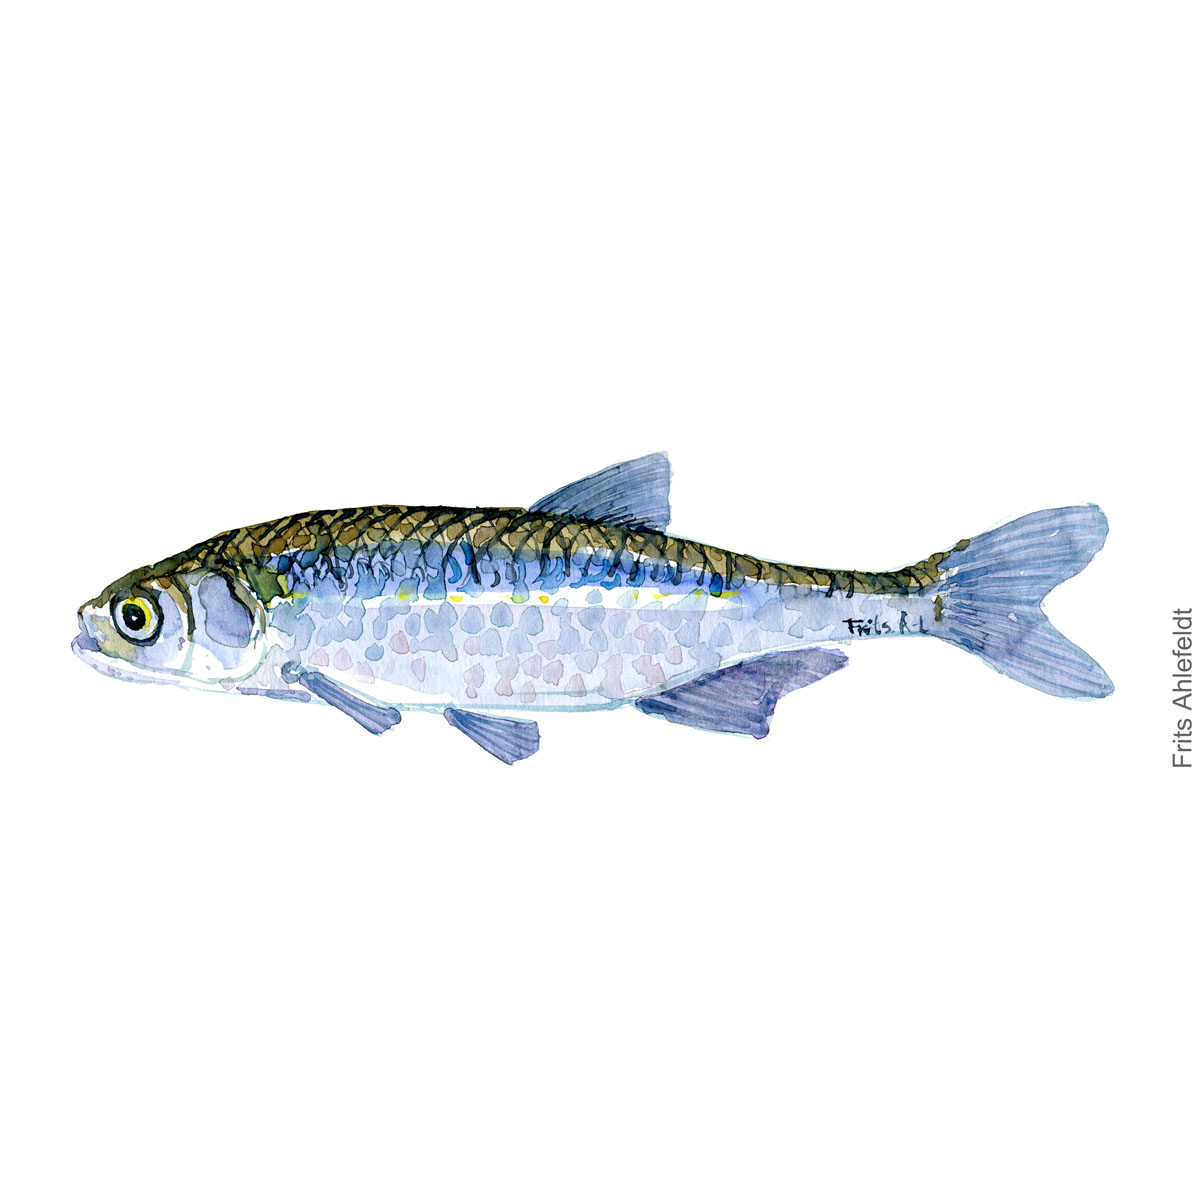 Sunbleak - Regnloje Fish watercolor illustration by frits Ahlefeldt